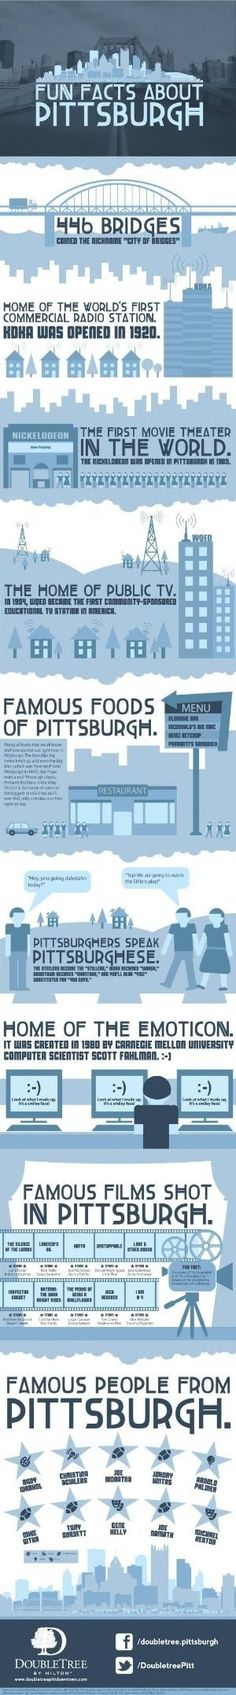 Fun Facts About Pittsburgh, Pennsylvania - While not everyone around the country may realize it, Pittsburgh is the home of many nationally embraced inventions and celebrities. With a long history for innovation and a surprisingly scenic environment given its industrial reputation, Pittsburgh is one of America's best kept secrets by jo